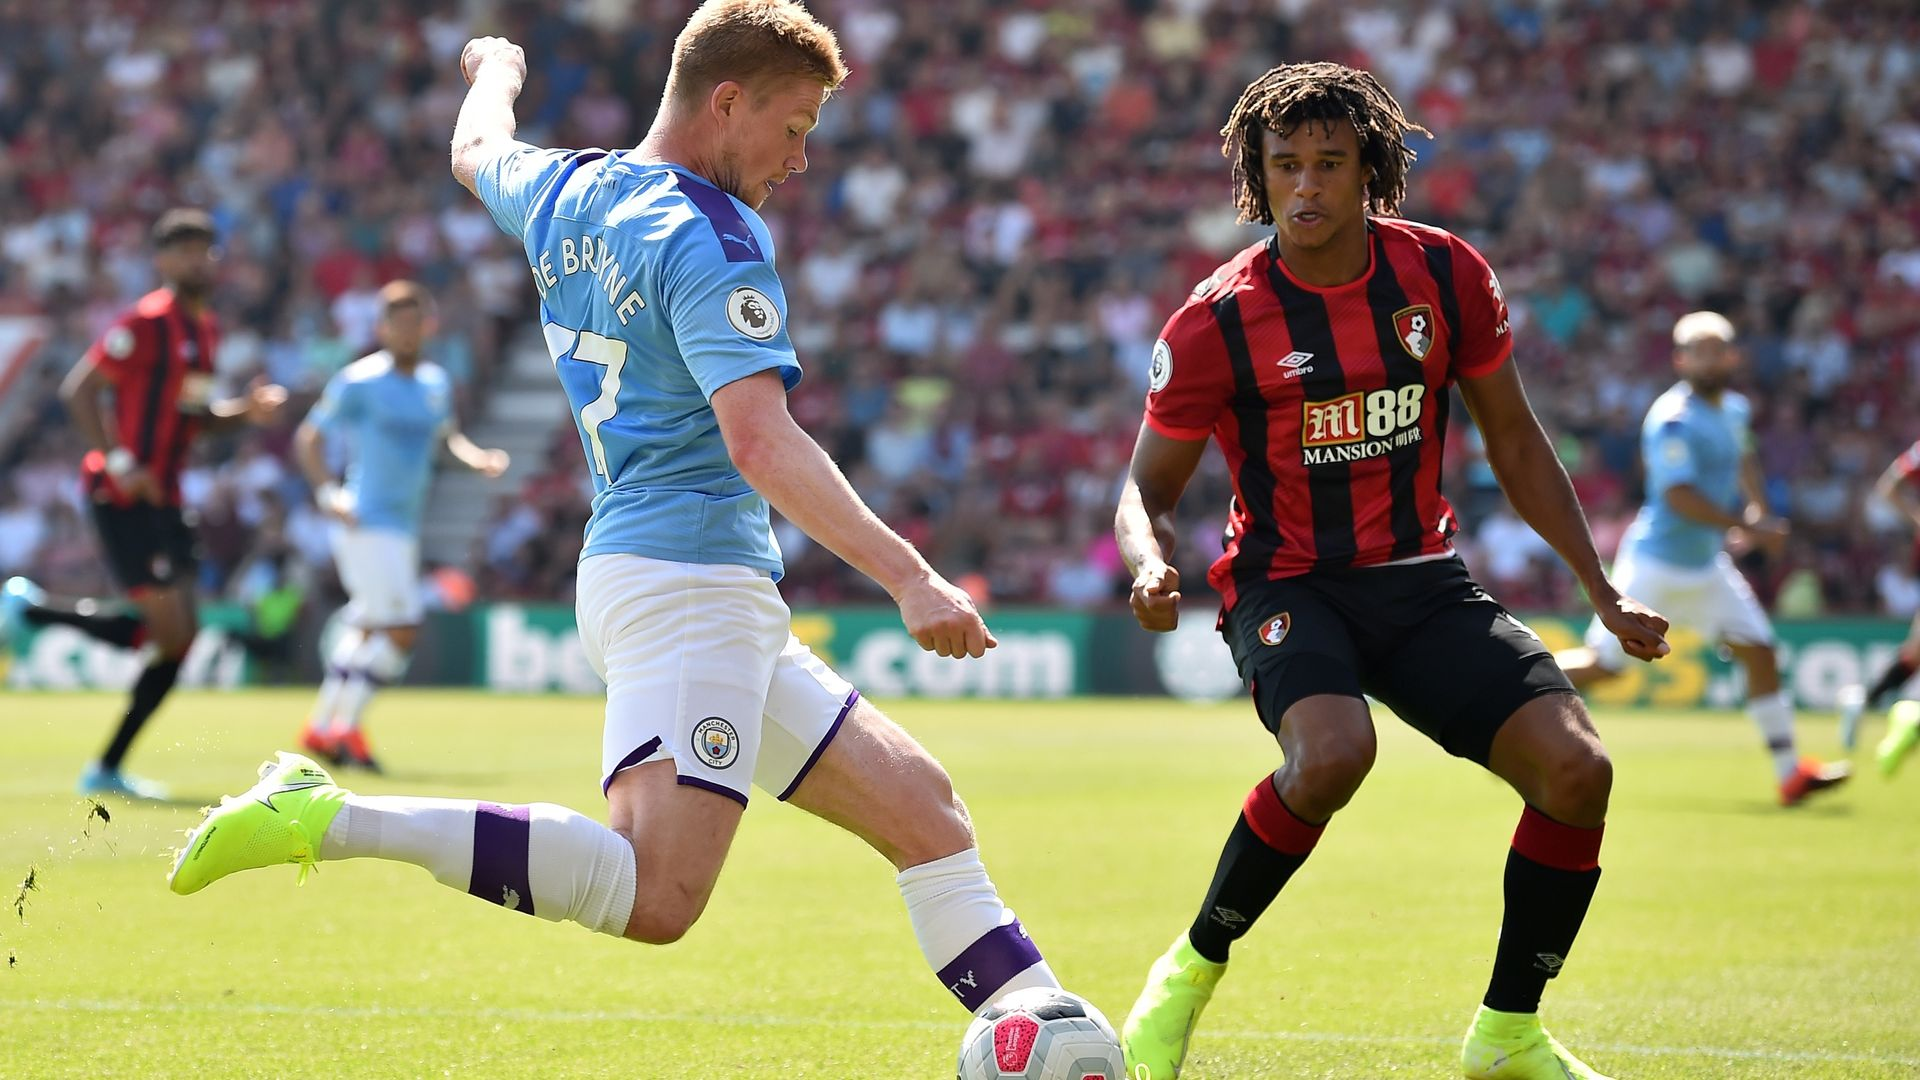 Man City complete £41m deal for Ake